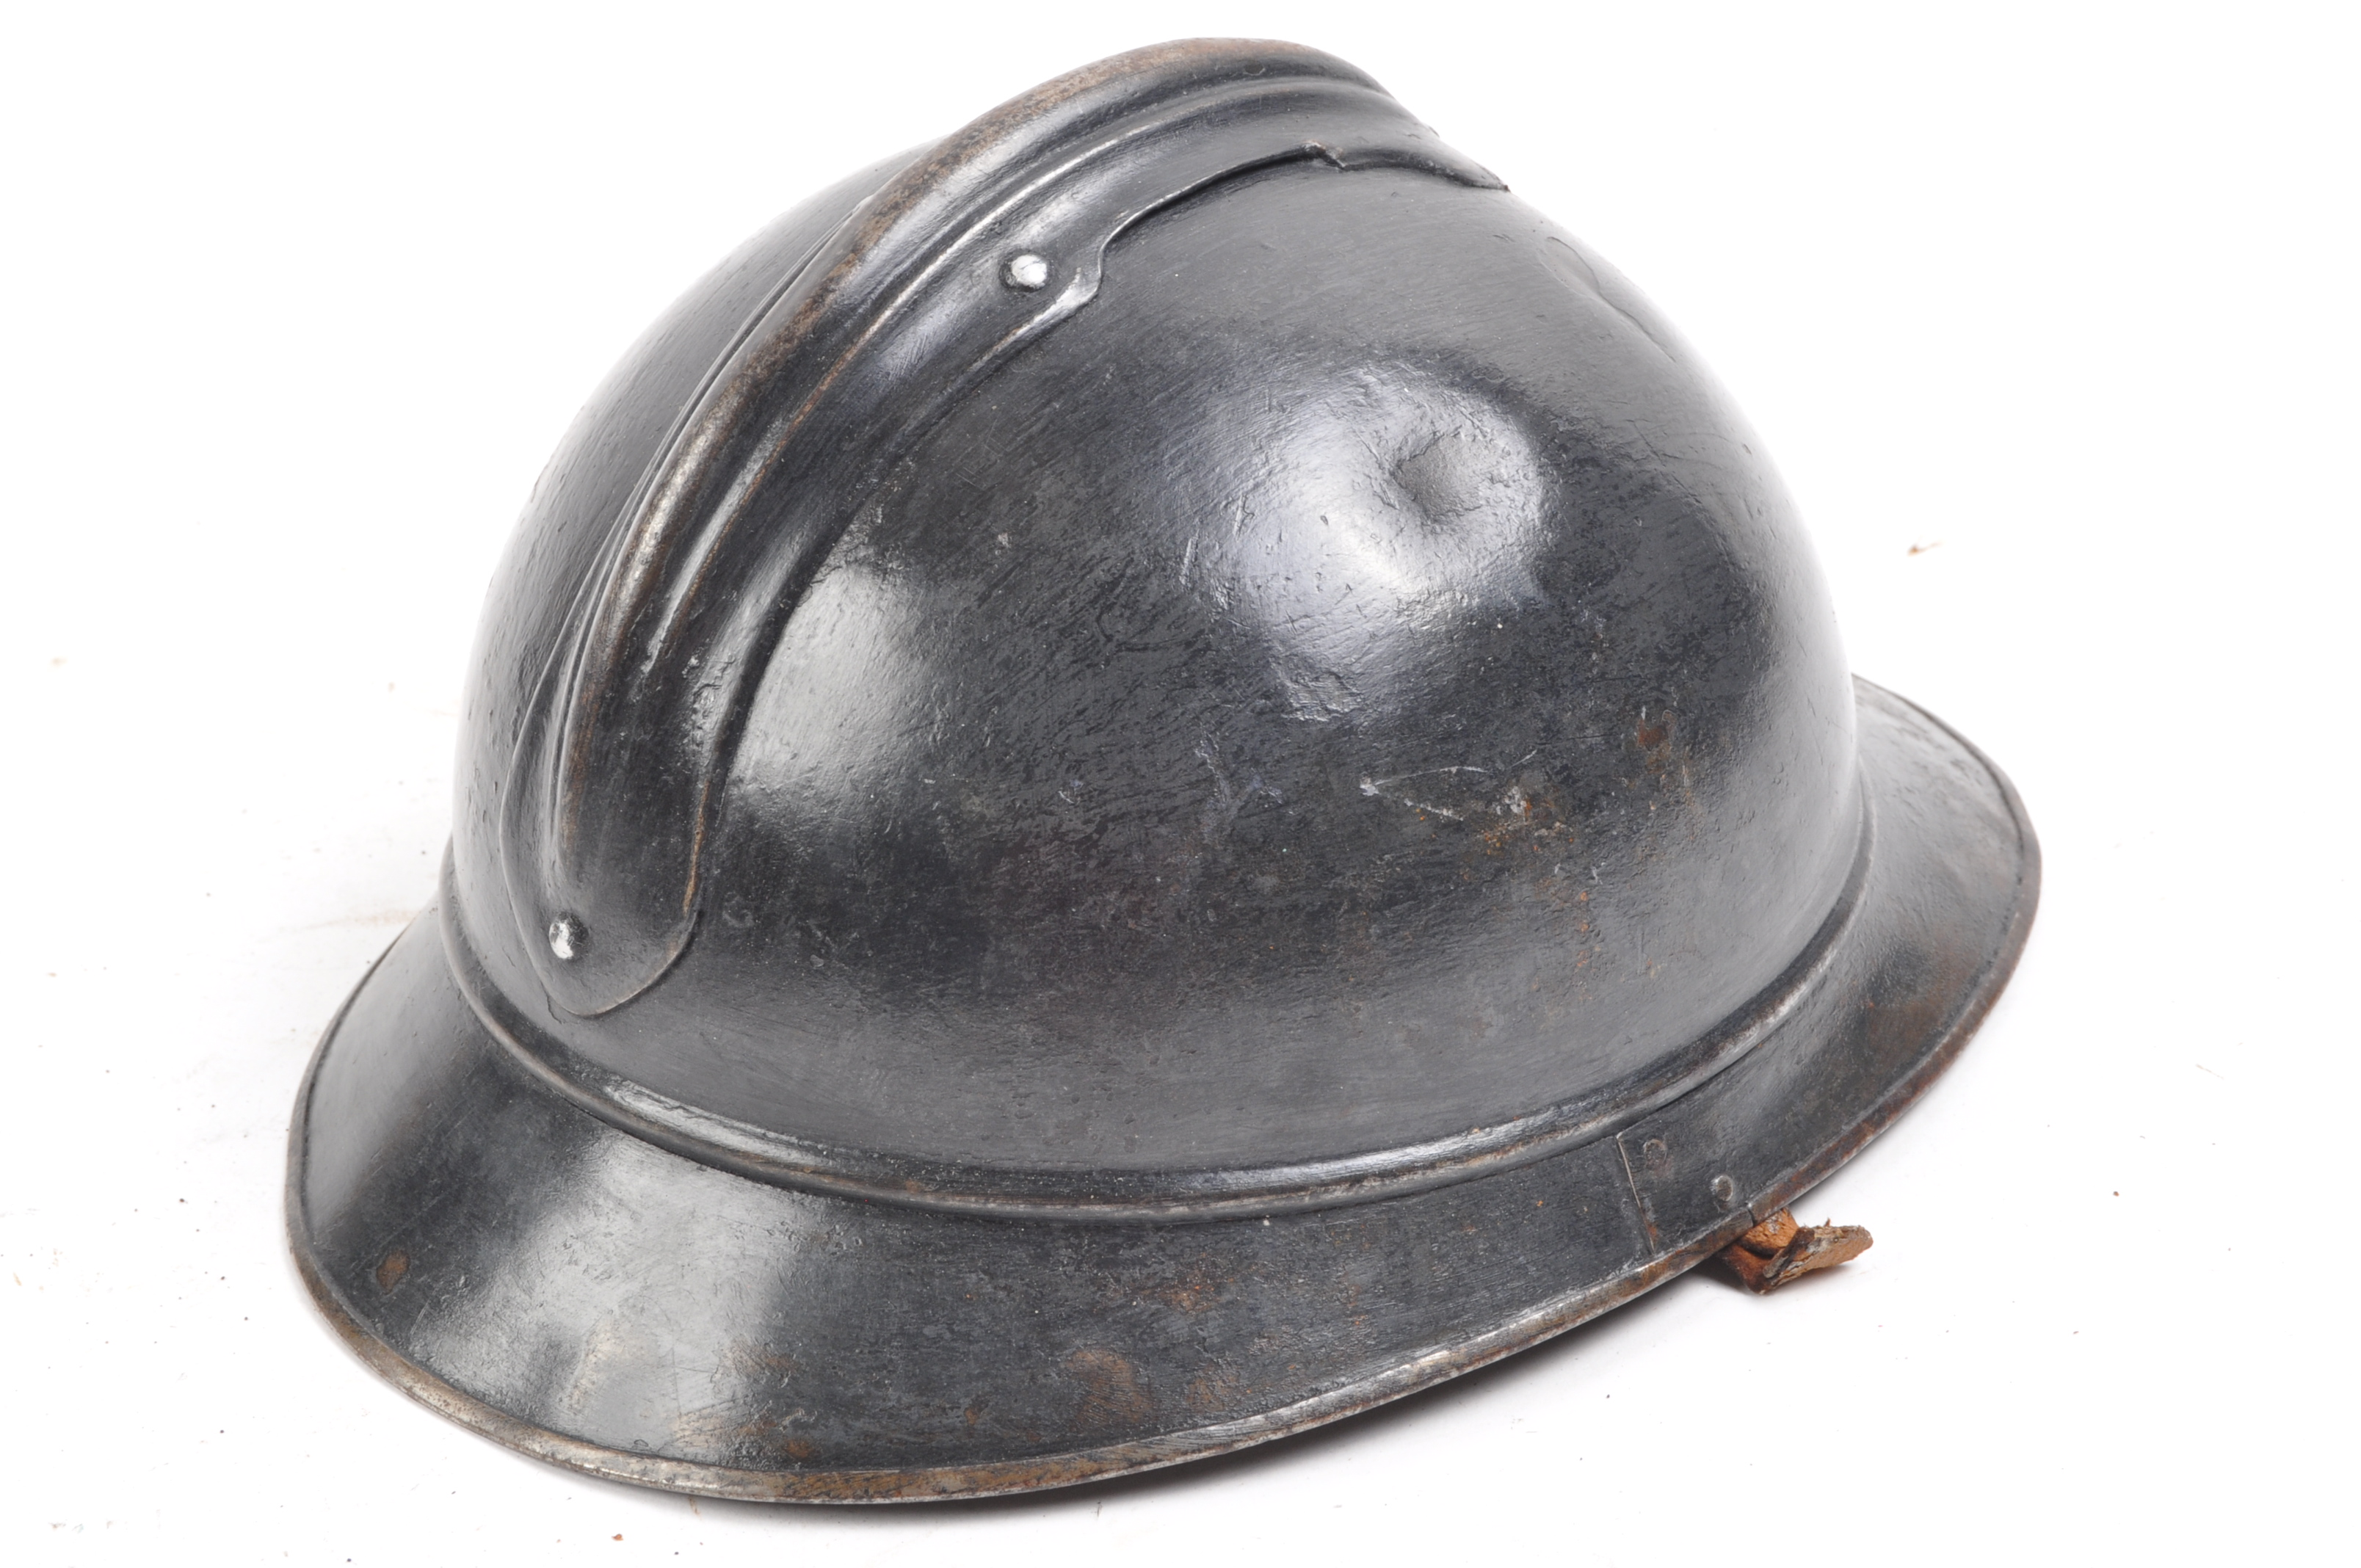 WWI FIRST WORLD WAR M15 PATTERN FRENCH ADRIAN HELMET - Image 3 of 5